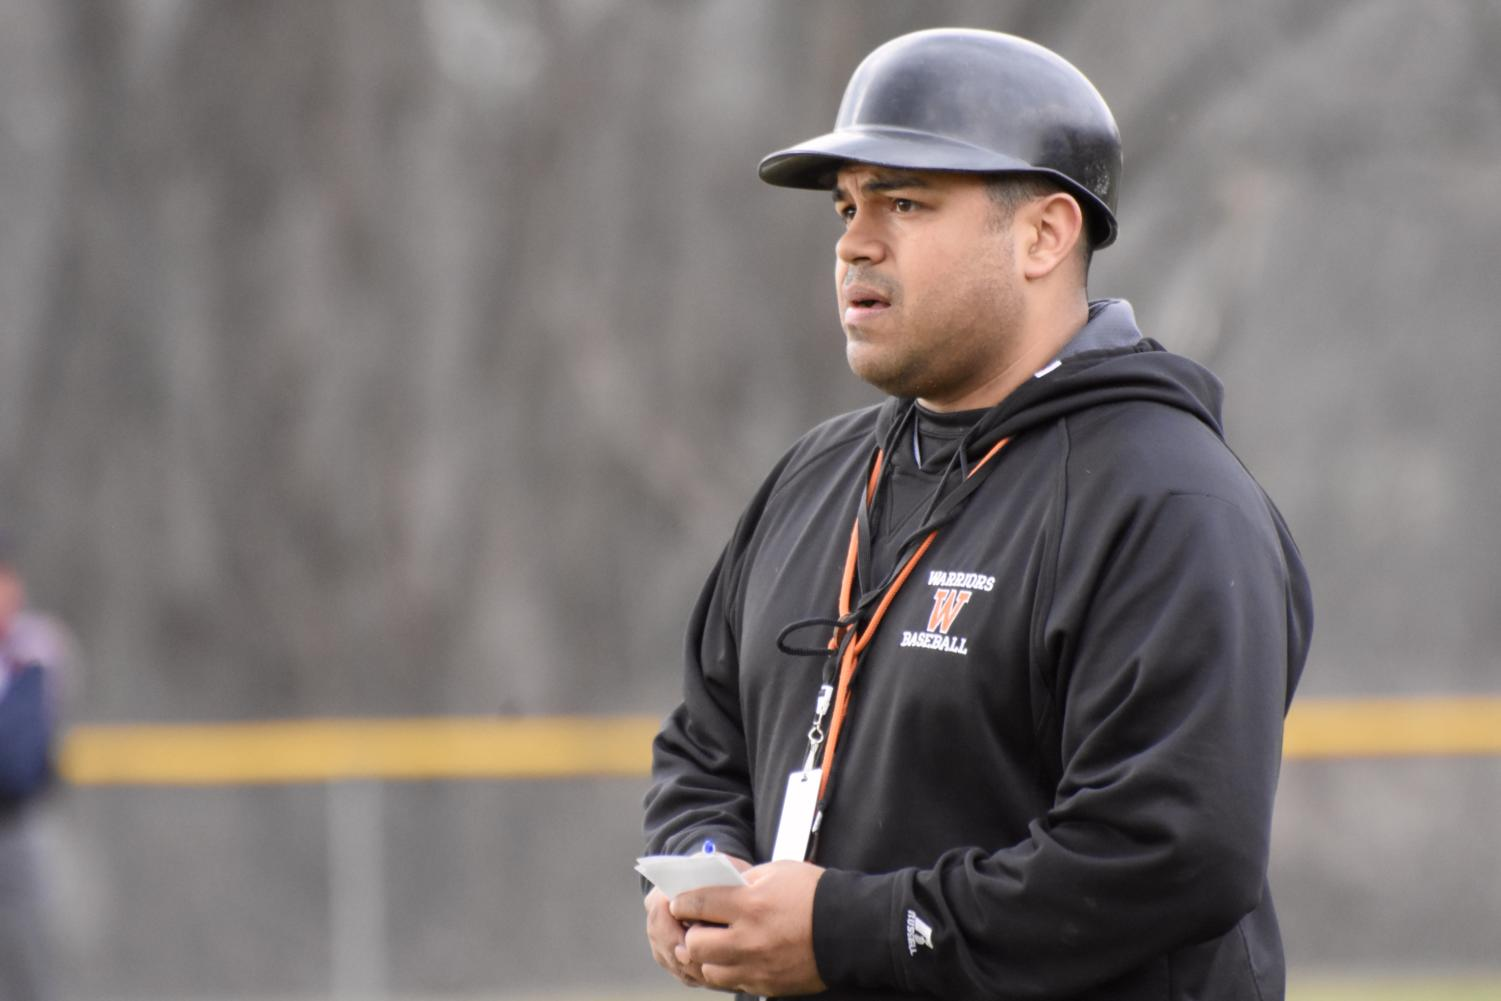 Paul Bonfiglio, the new head baseball coach at Wayland High School, looks down the line and gives signals to his team.